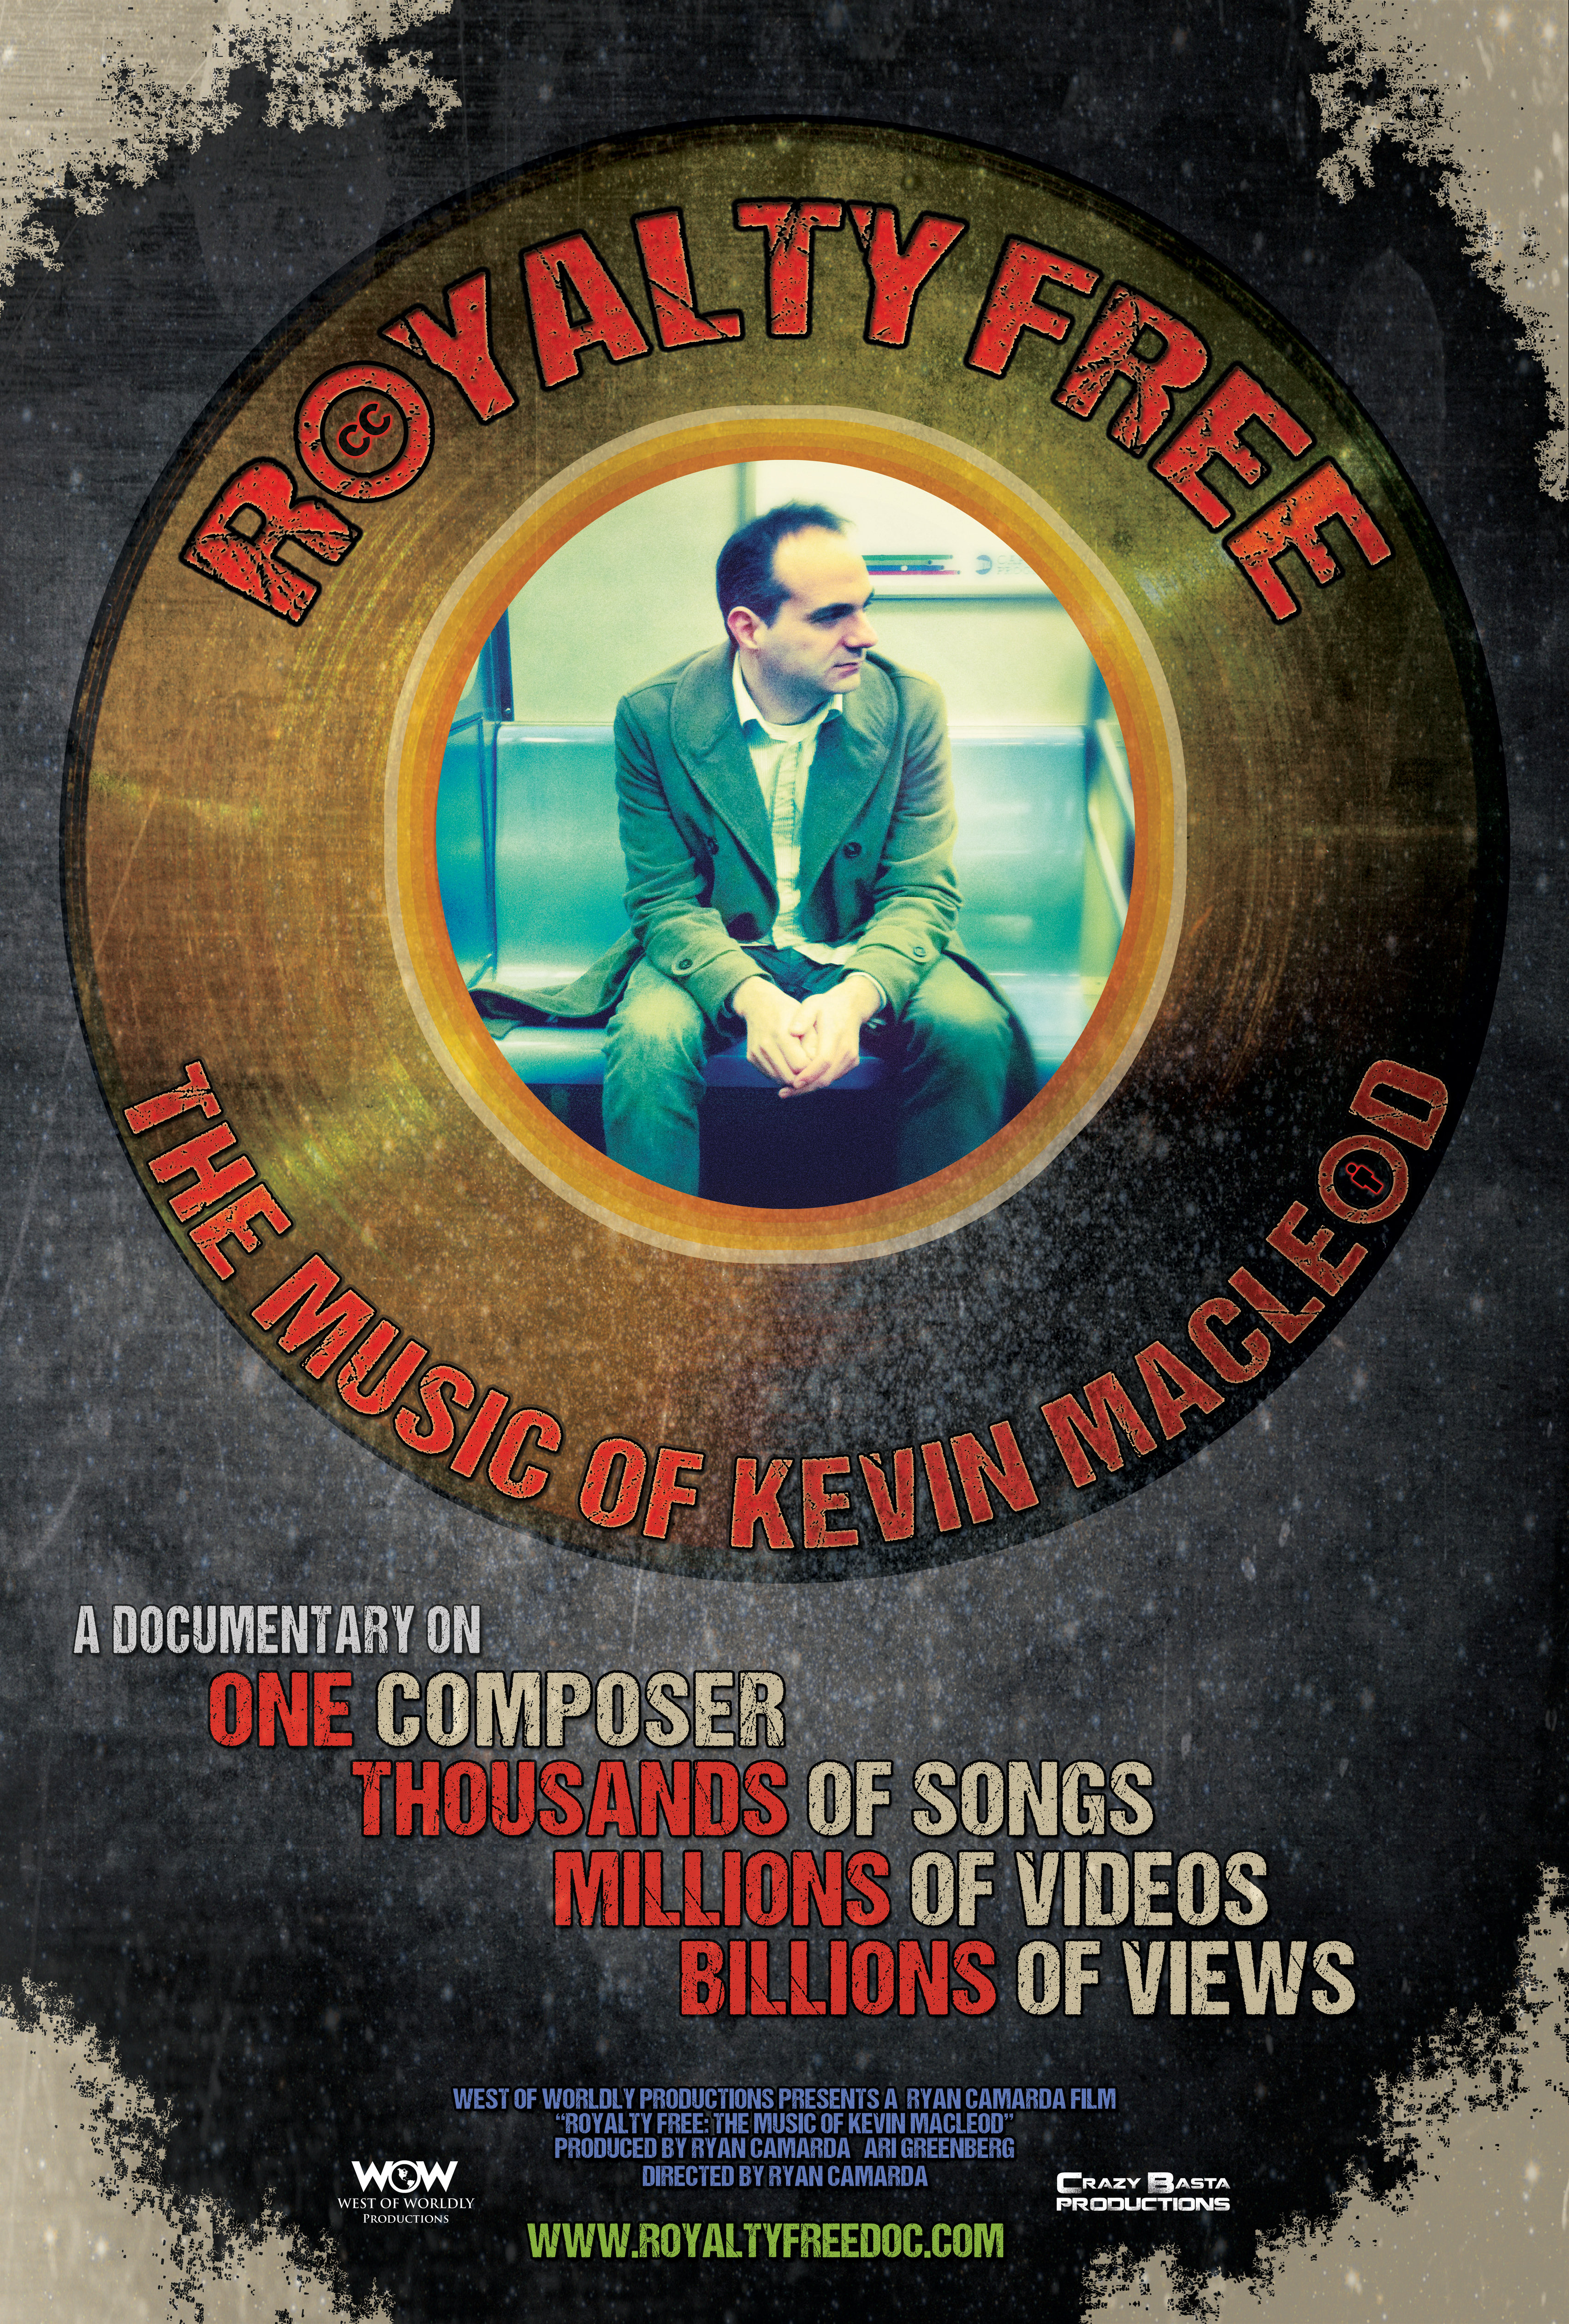 Royalty Free: The Music of Kevin MacLeod - IMDb